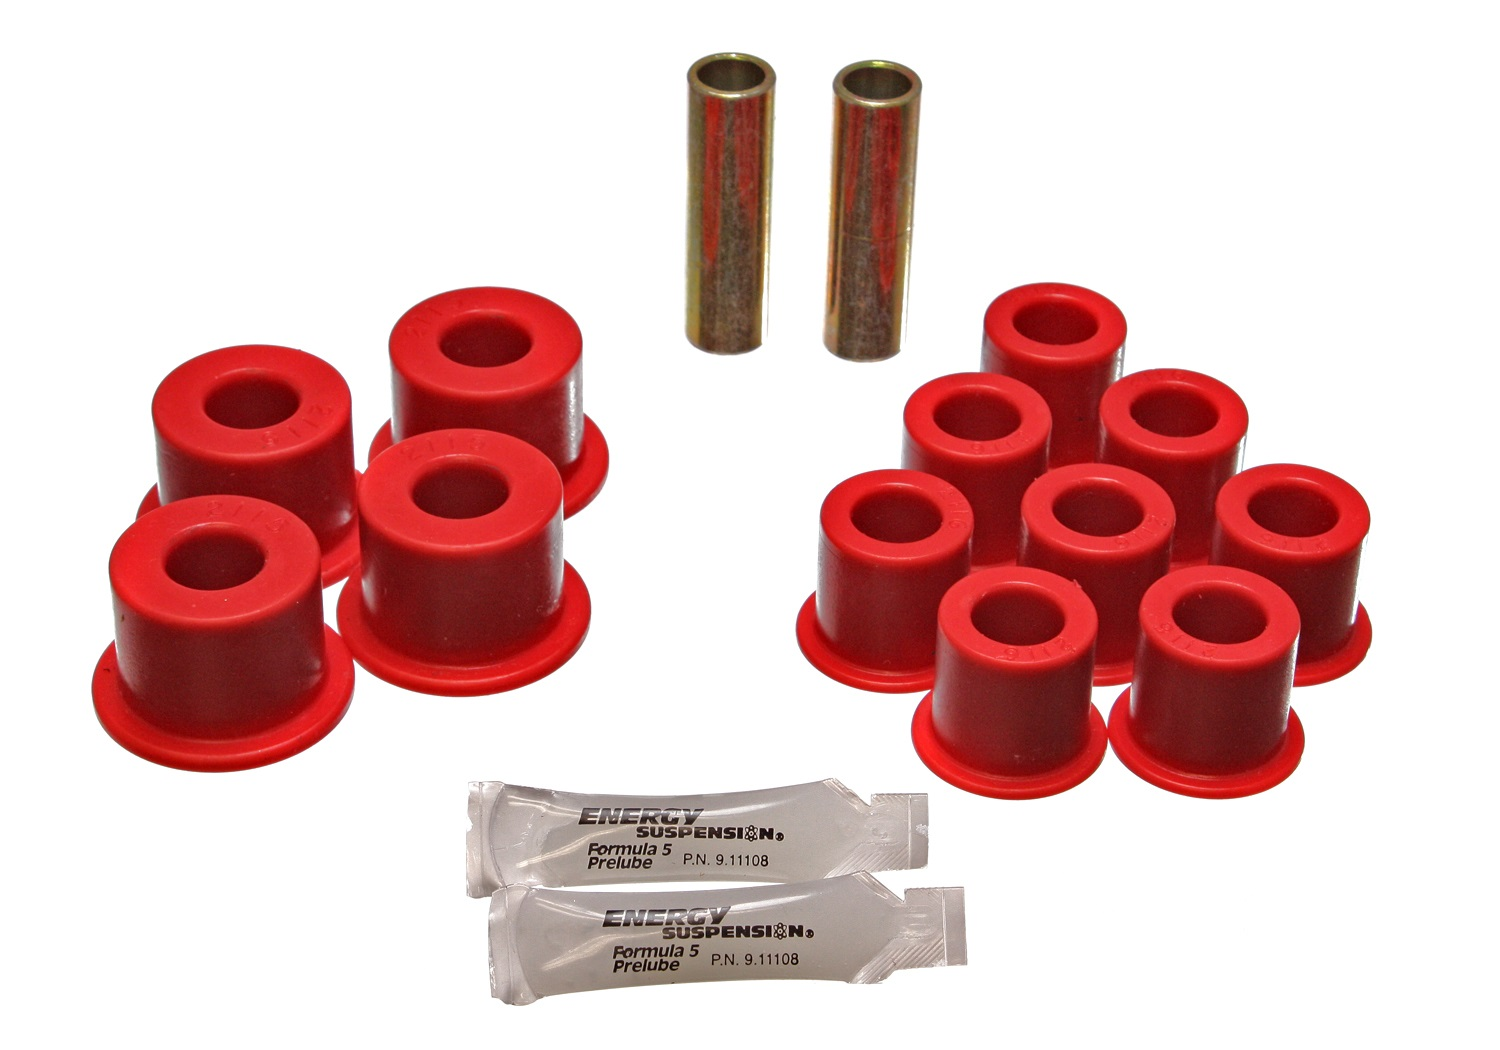 Energy Suspension Leaf Spring Bushing (14.2101R)